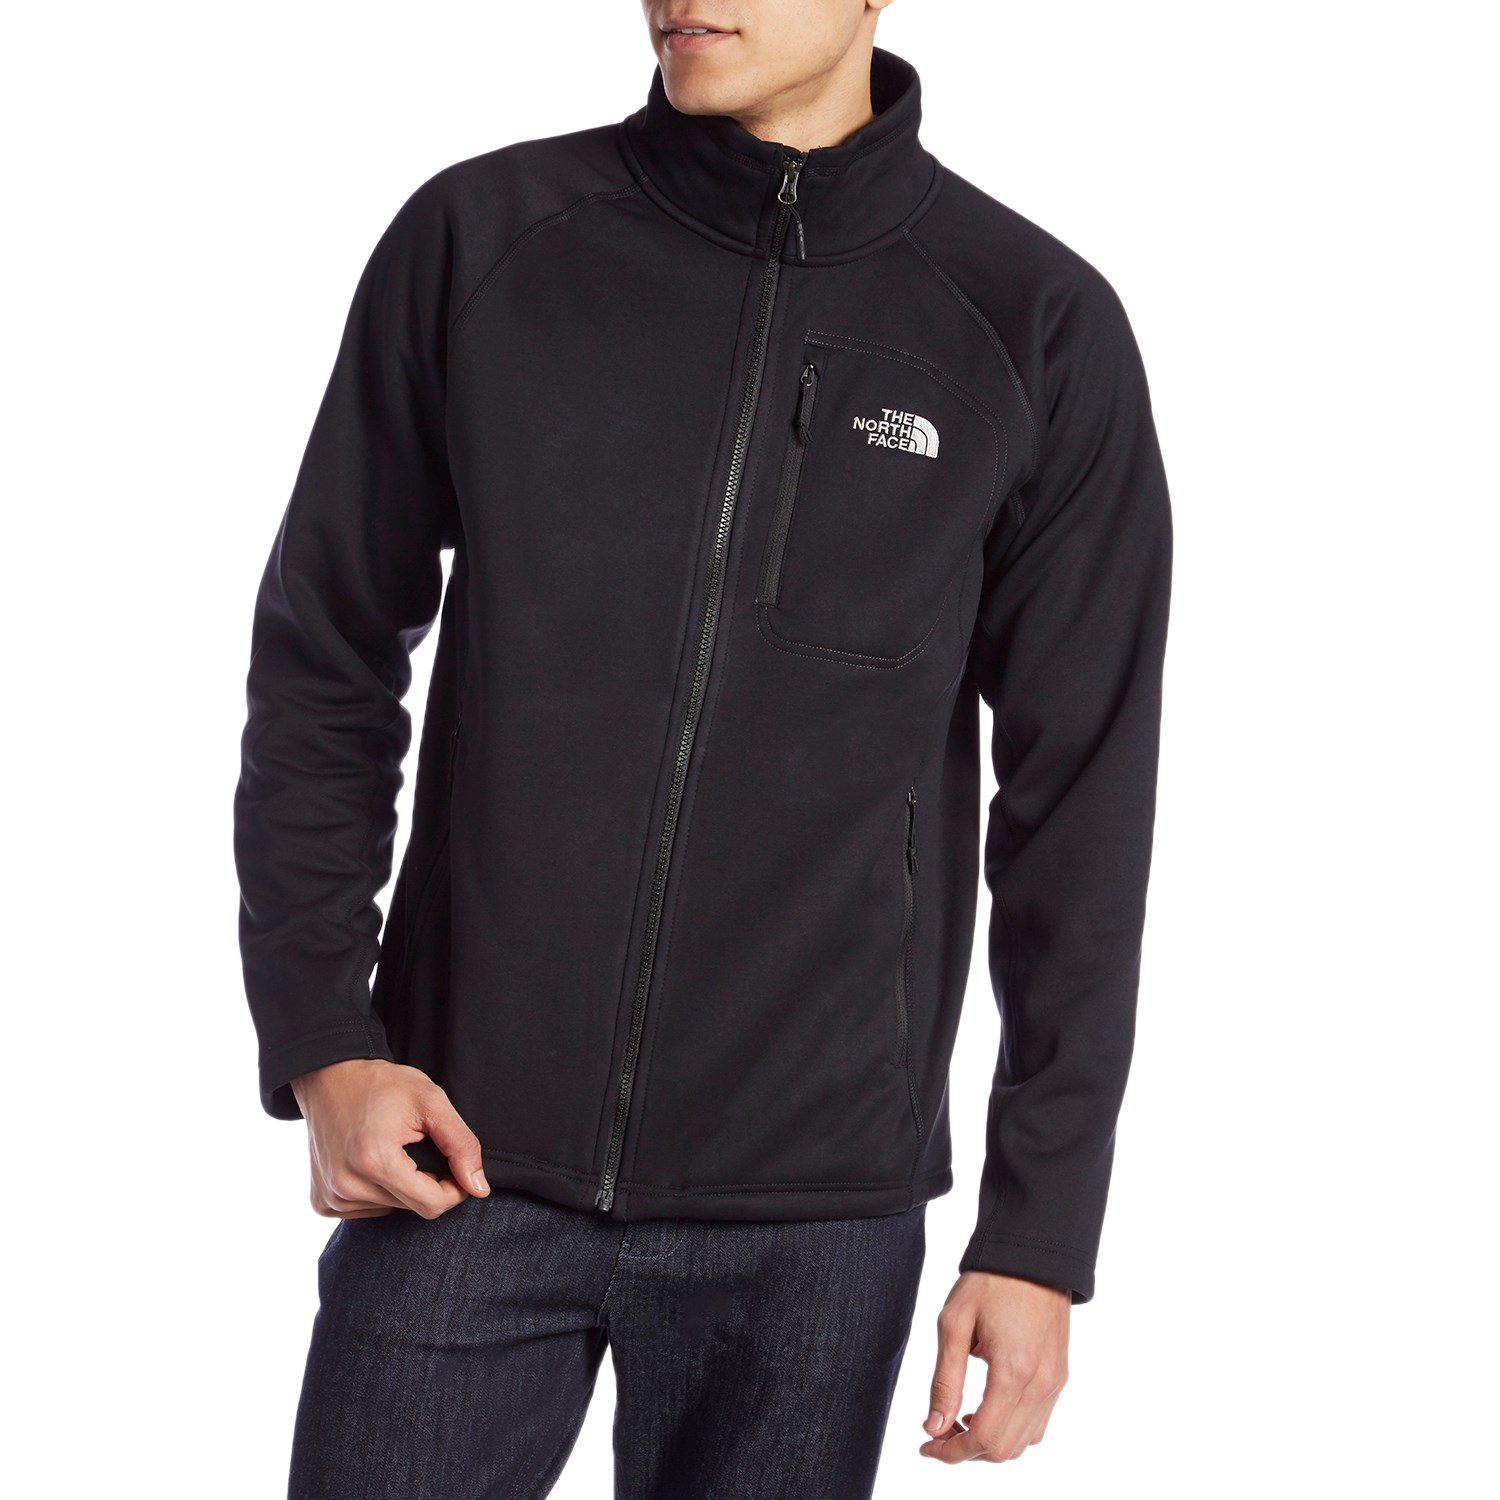 ee9e6295606d The North Face Timber Full-Zip Fleece